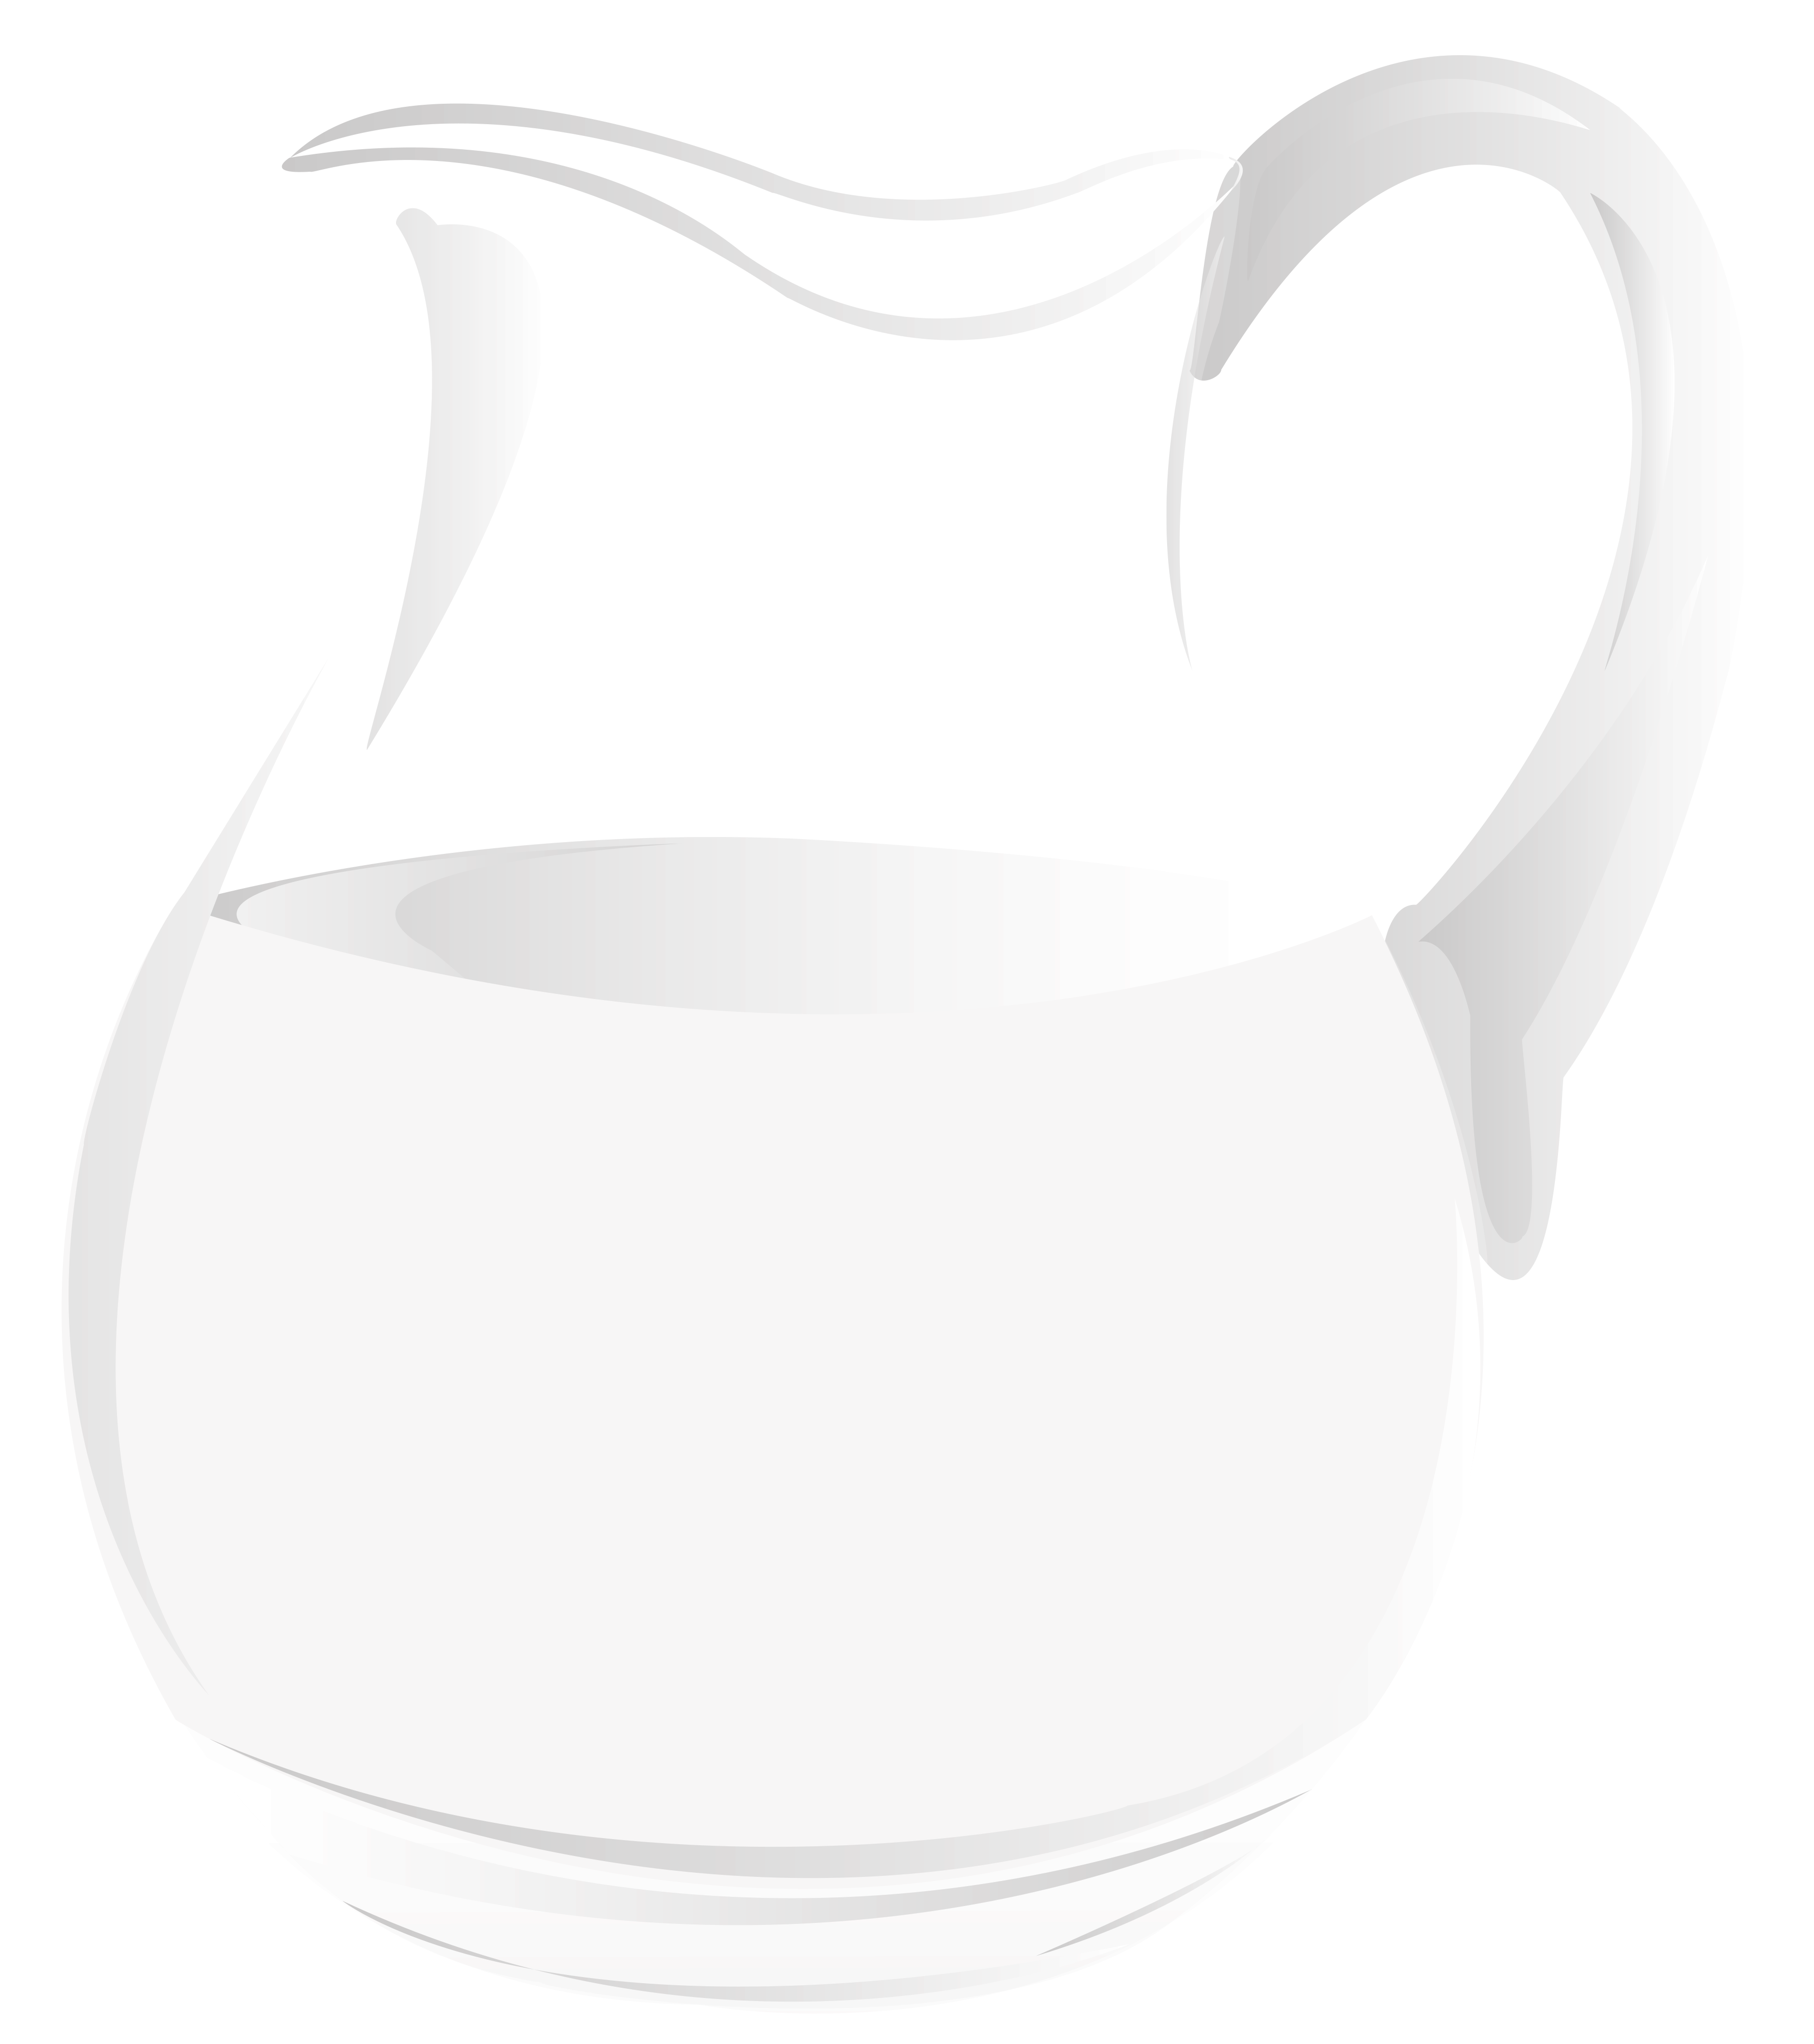 Milk clipart png. Jug of gallery yopriceville